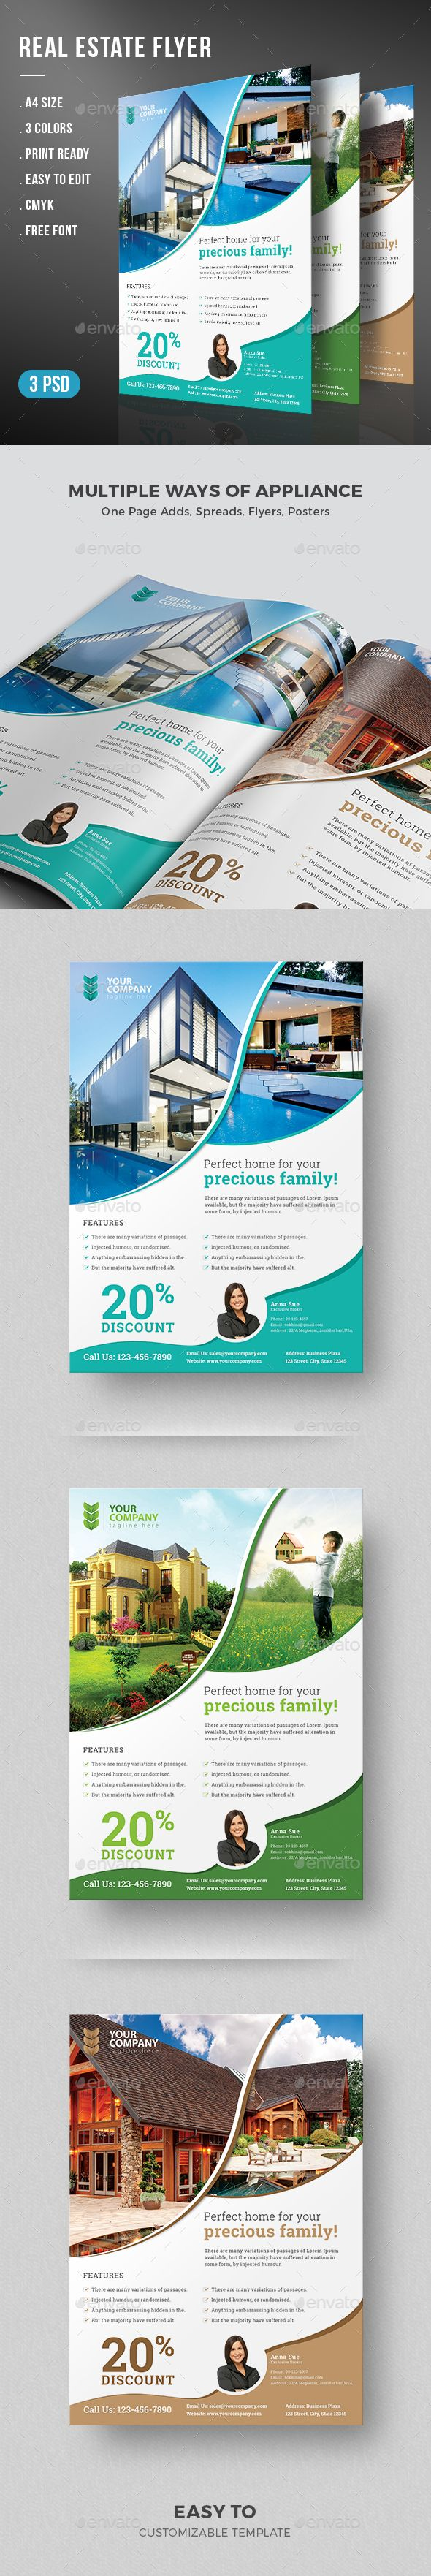 best ideas about templates for flyers bake real estate flyer